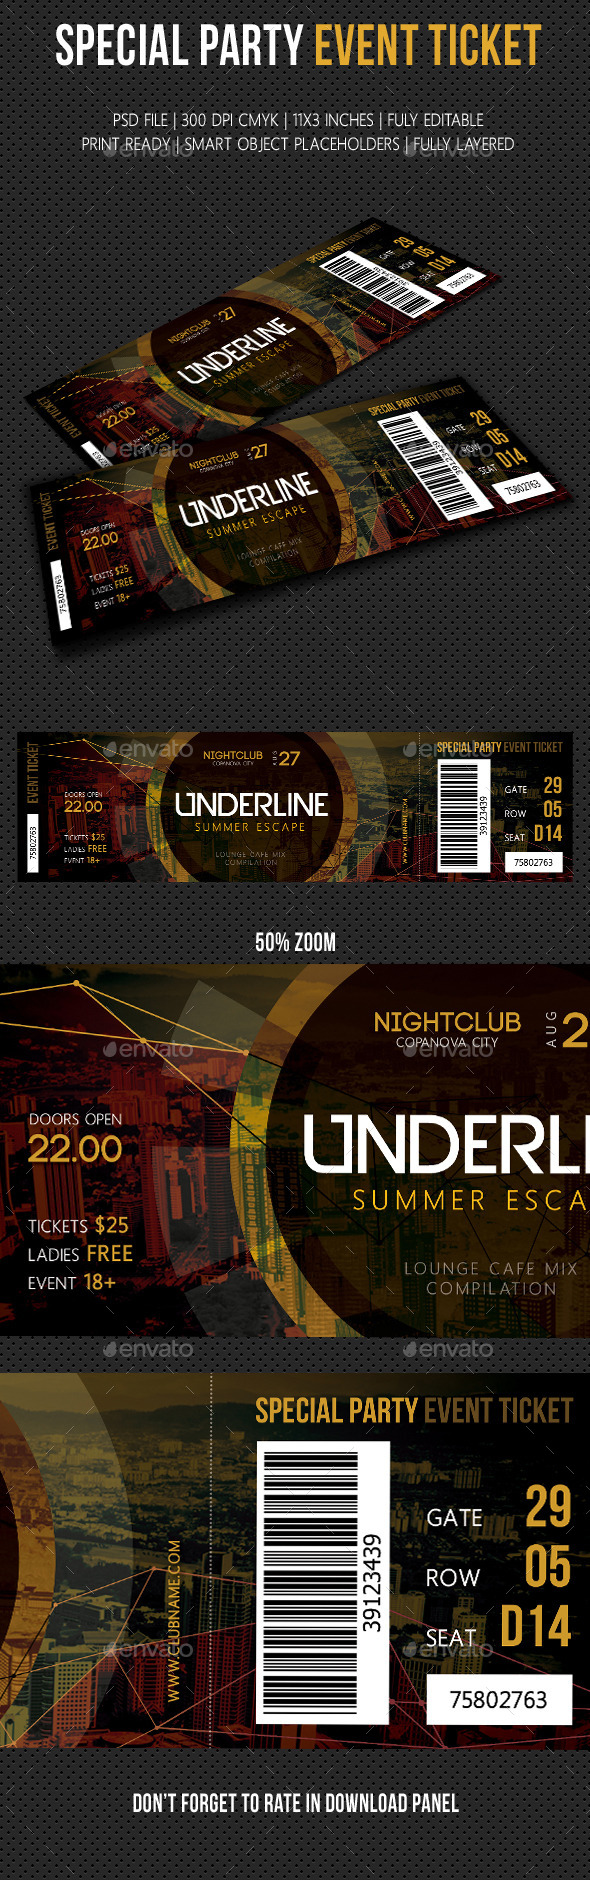 Special Party Event Ticket V08